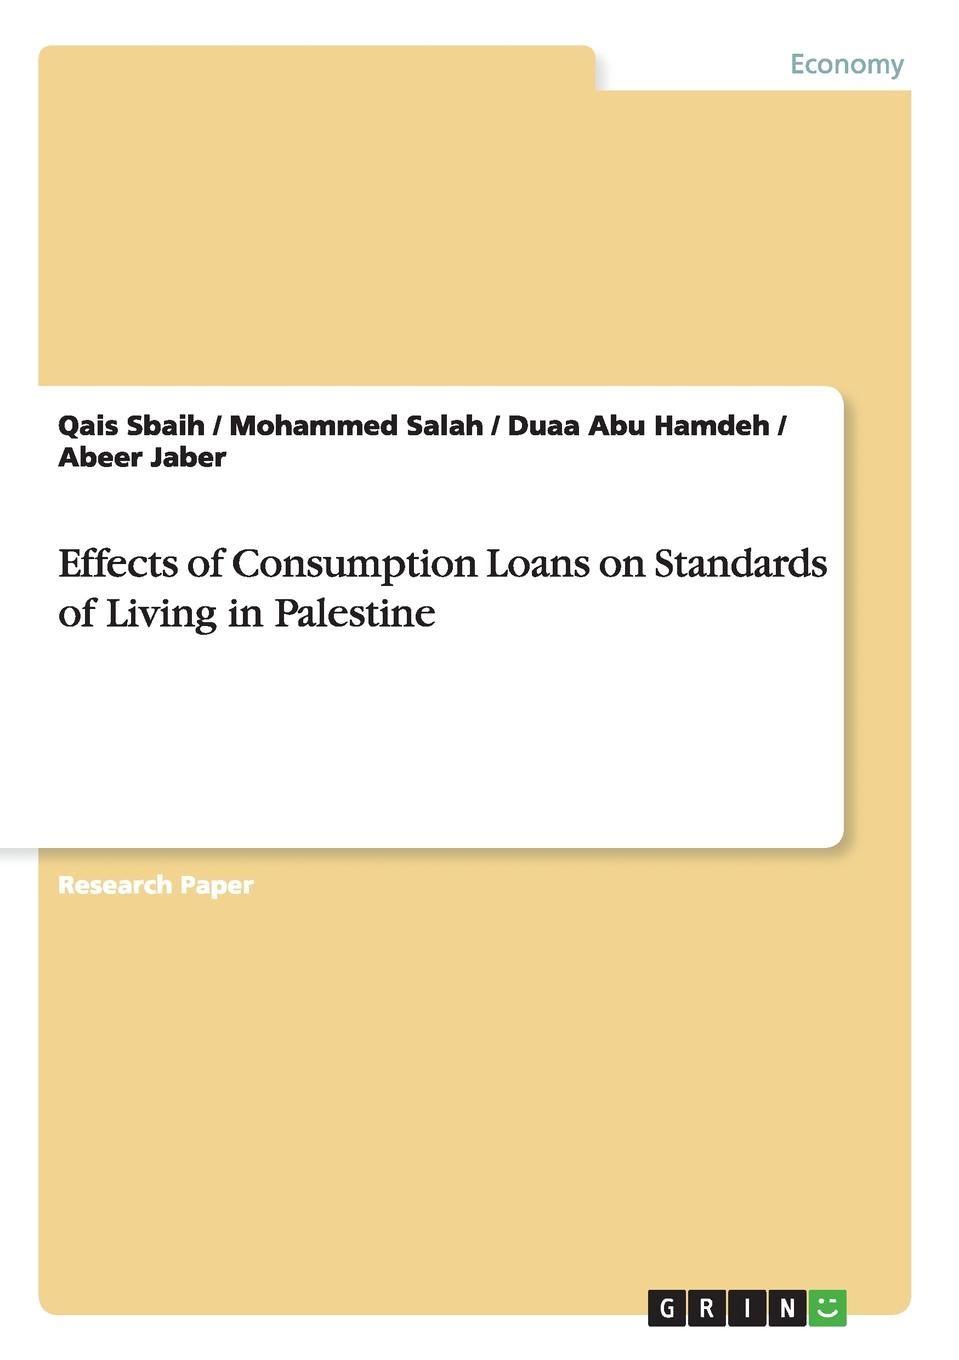 Qais Sbaih, Mohammed Salah, Duaa Abu Hamdeh Effects of Consumption Loans on Standards of Living in Palestine business planning to ease repaying loans